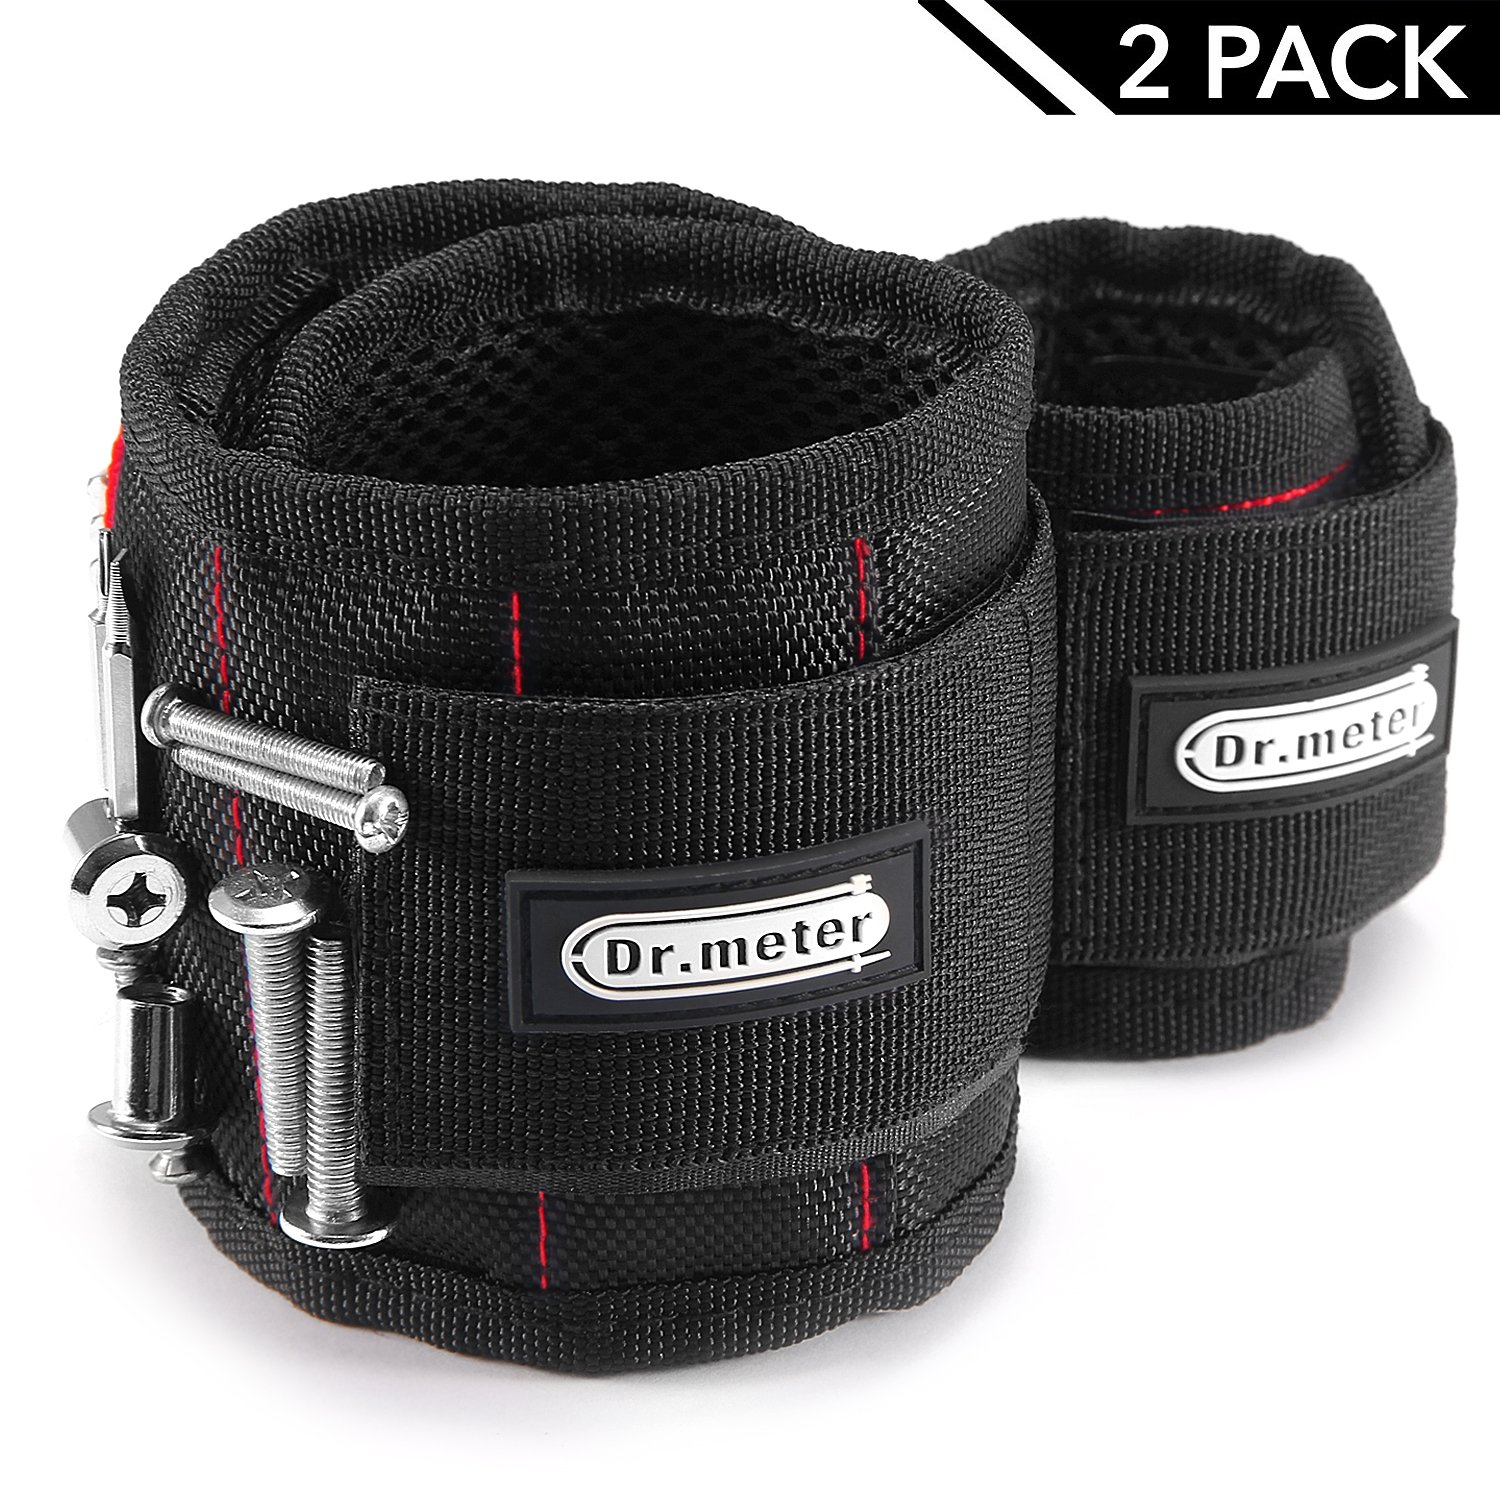 2 Packs Magnetic Wristband, Dr.meter Magnet Tool Wristband Belt with Super Strong 15 magnets for Holding Screws, Bolts, Nails and Drill Bits